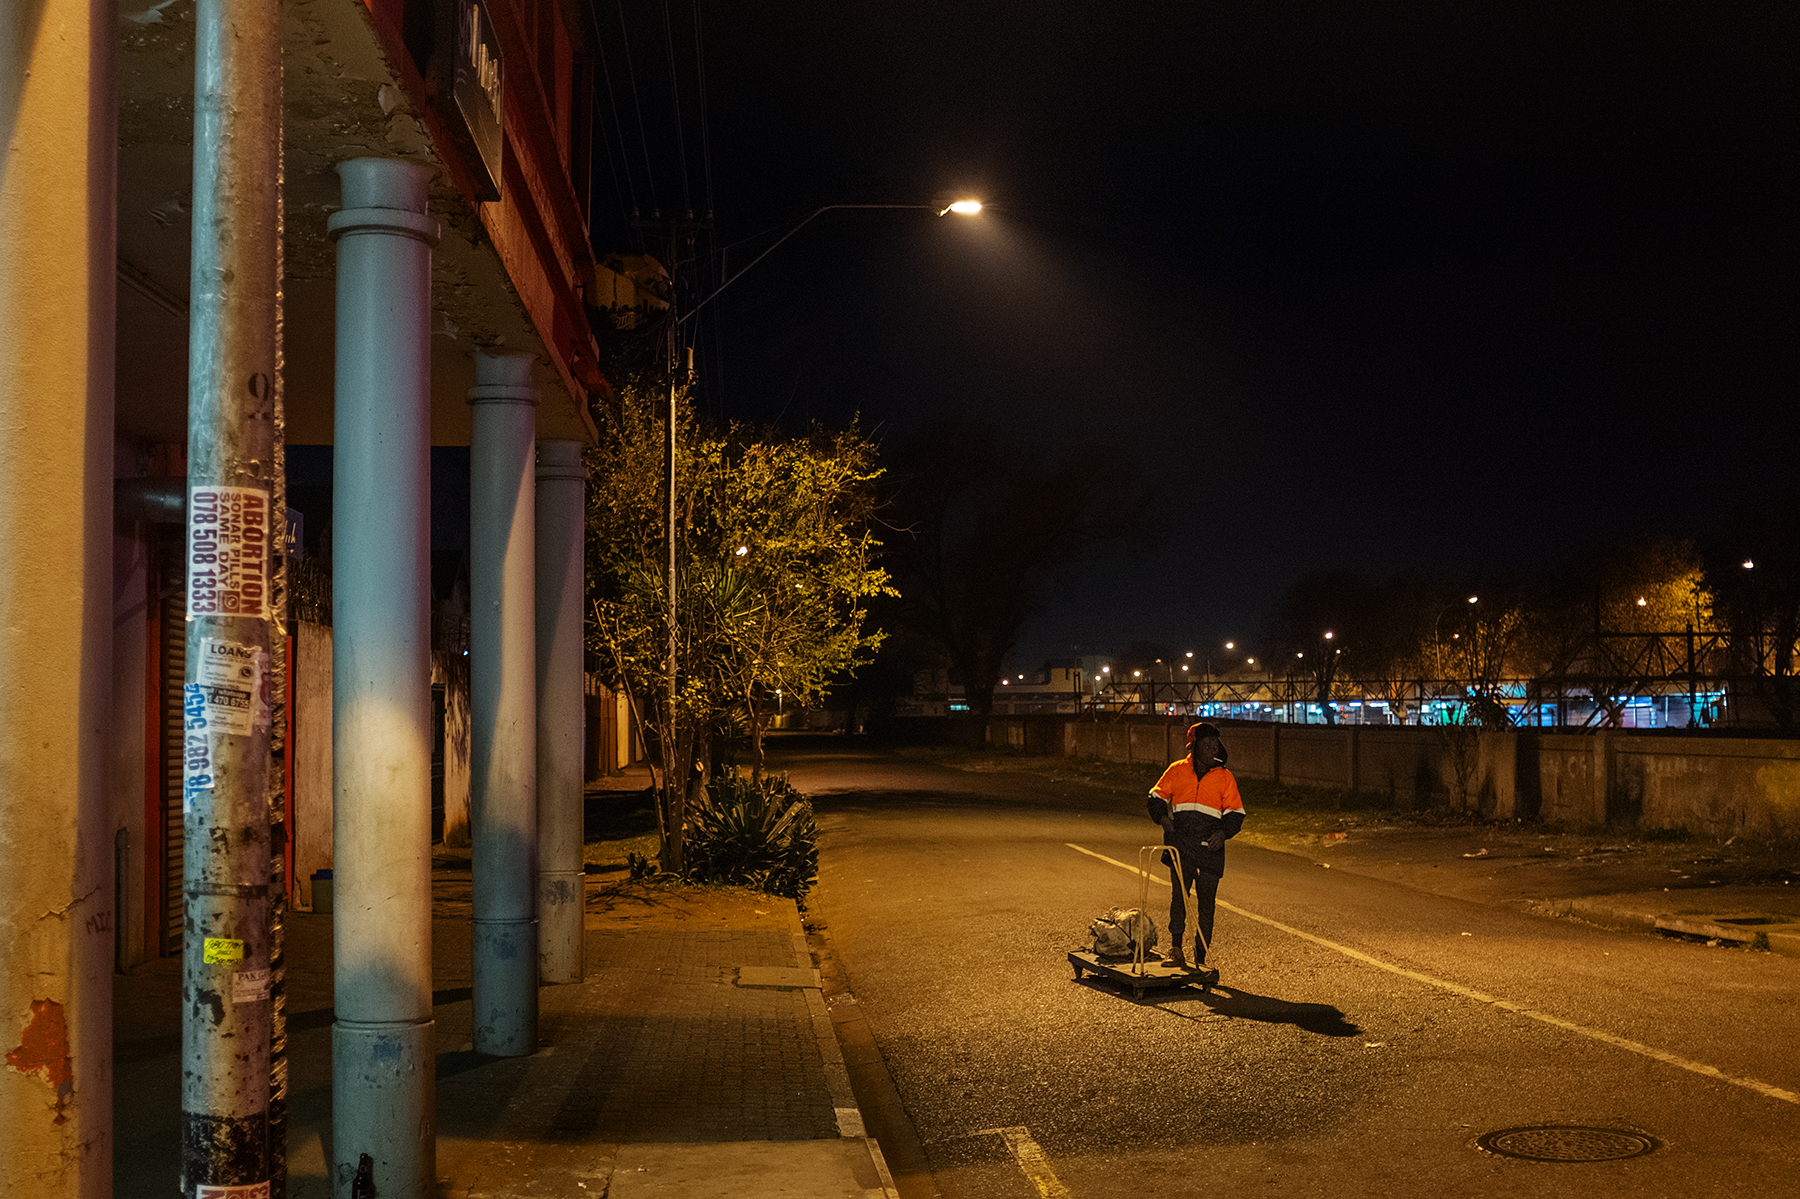 Scelo Sithole, 38, walks carrying his trolley in the streets of Johannesburg, South Africa, in the early morning of June 12, 2019, to start his day as an informal waste picker.